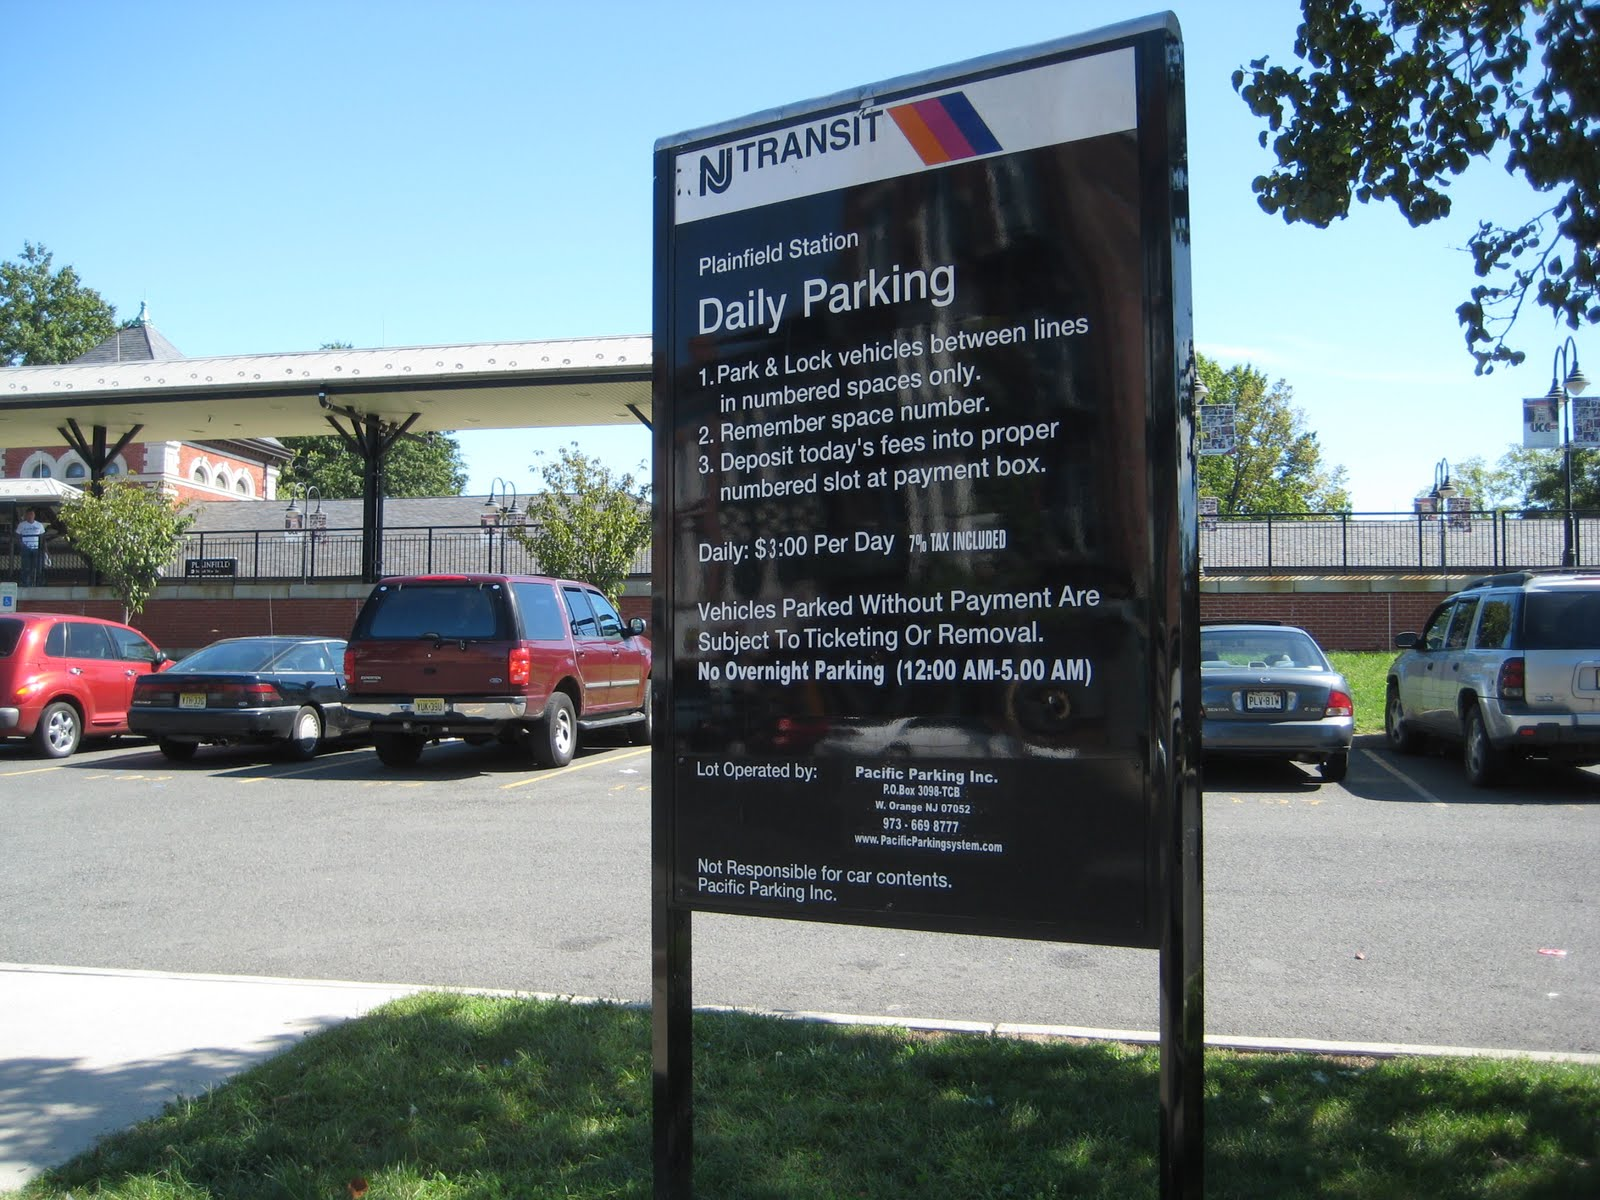 Questions Loom As Nj Transit Considers Privatizing Parking